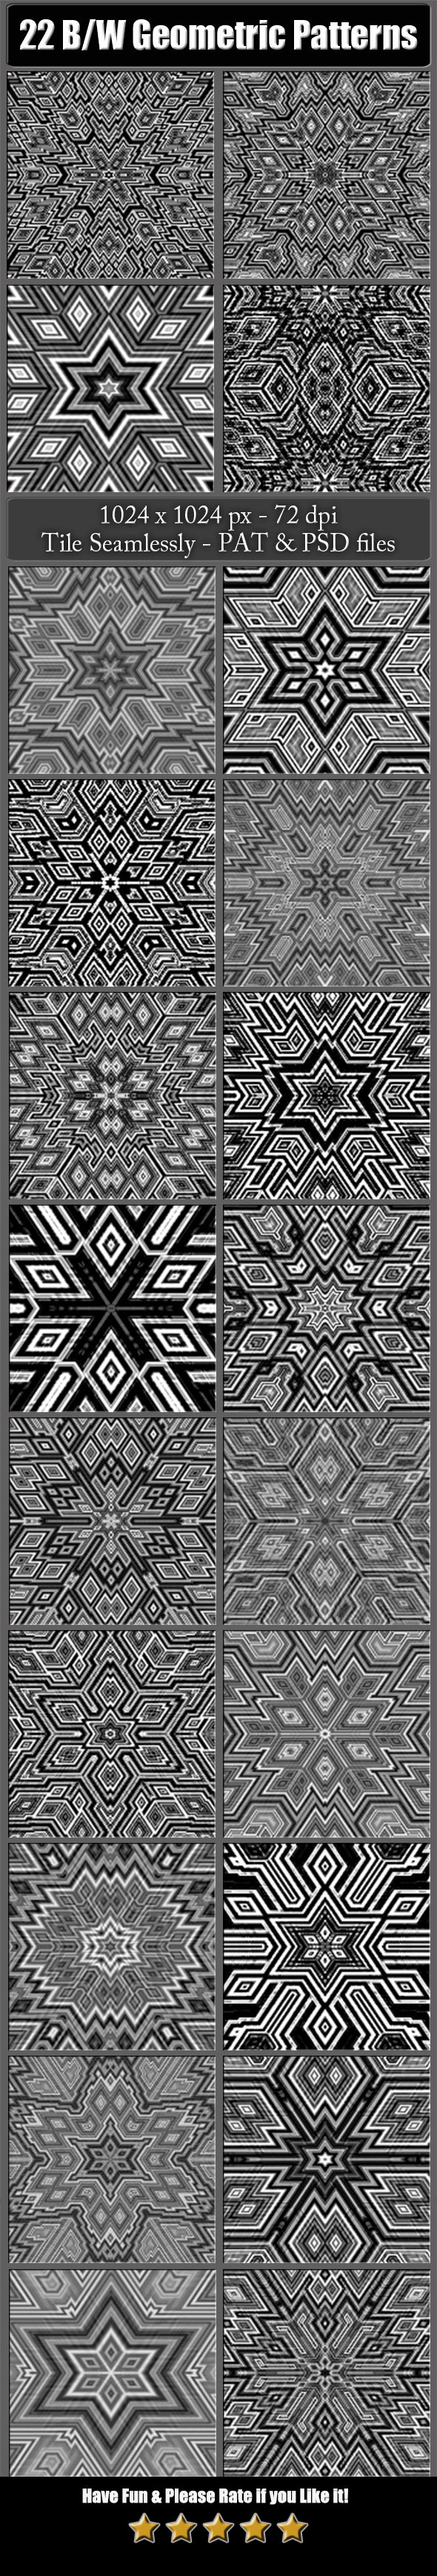 22 B&W Geometric Patterns - Miscellaneous Textures / Fills / Patterns